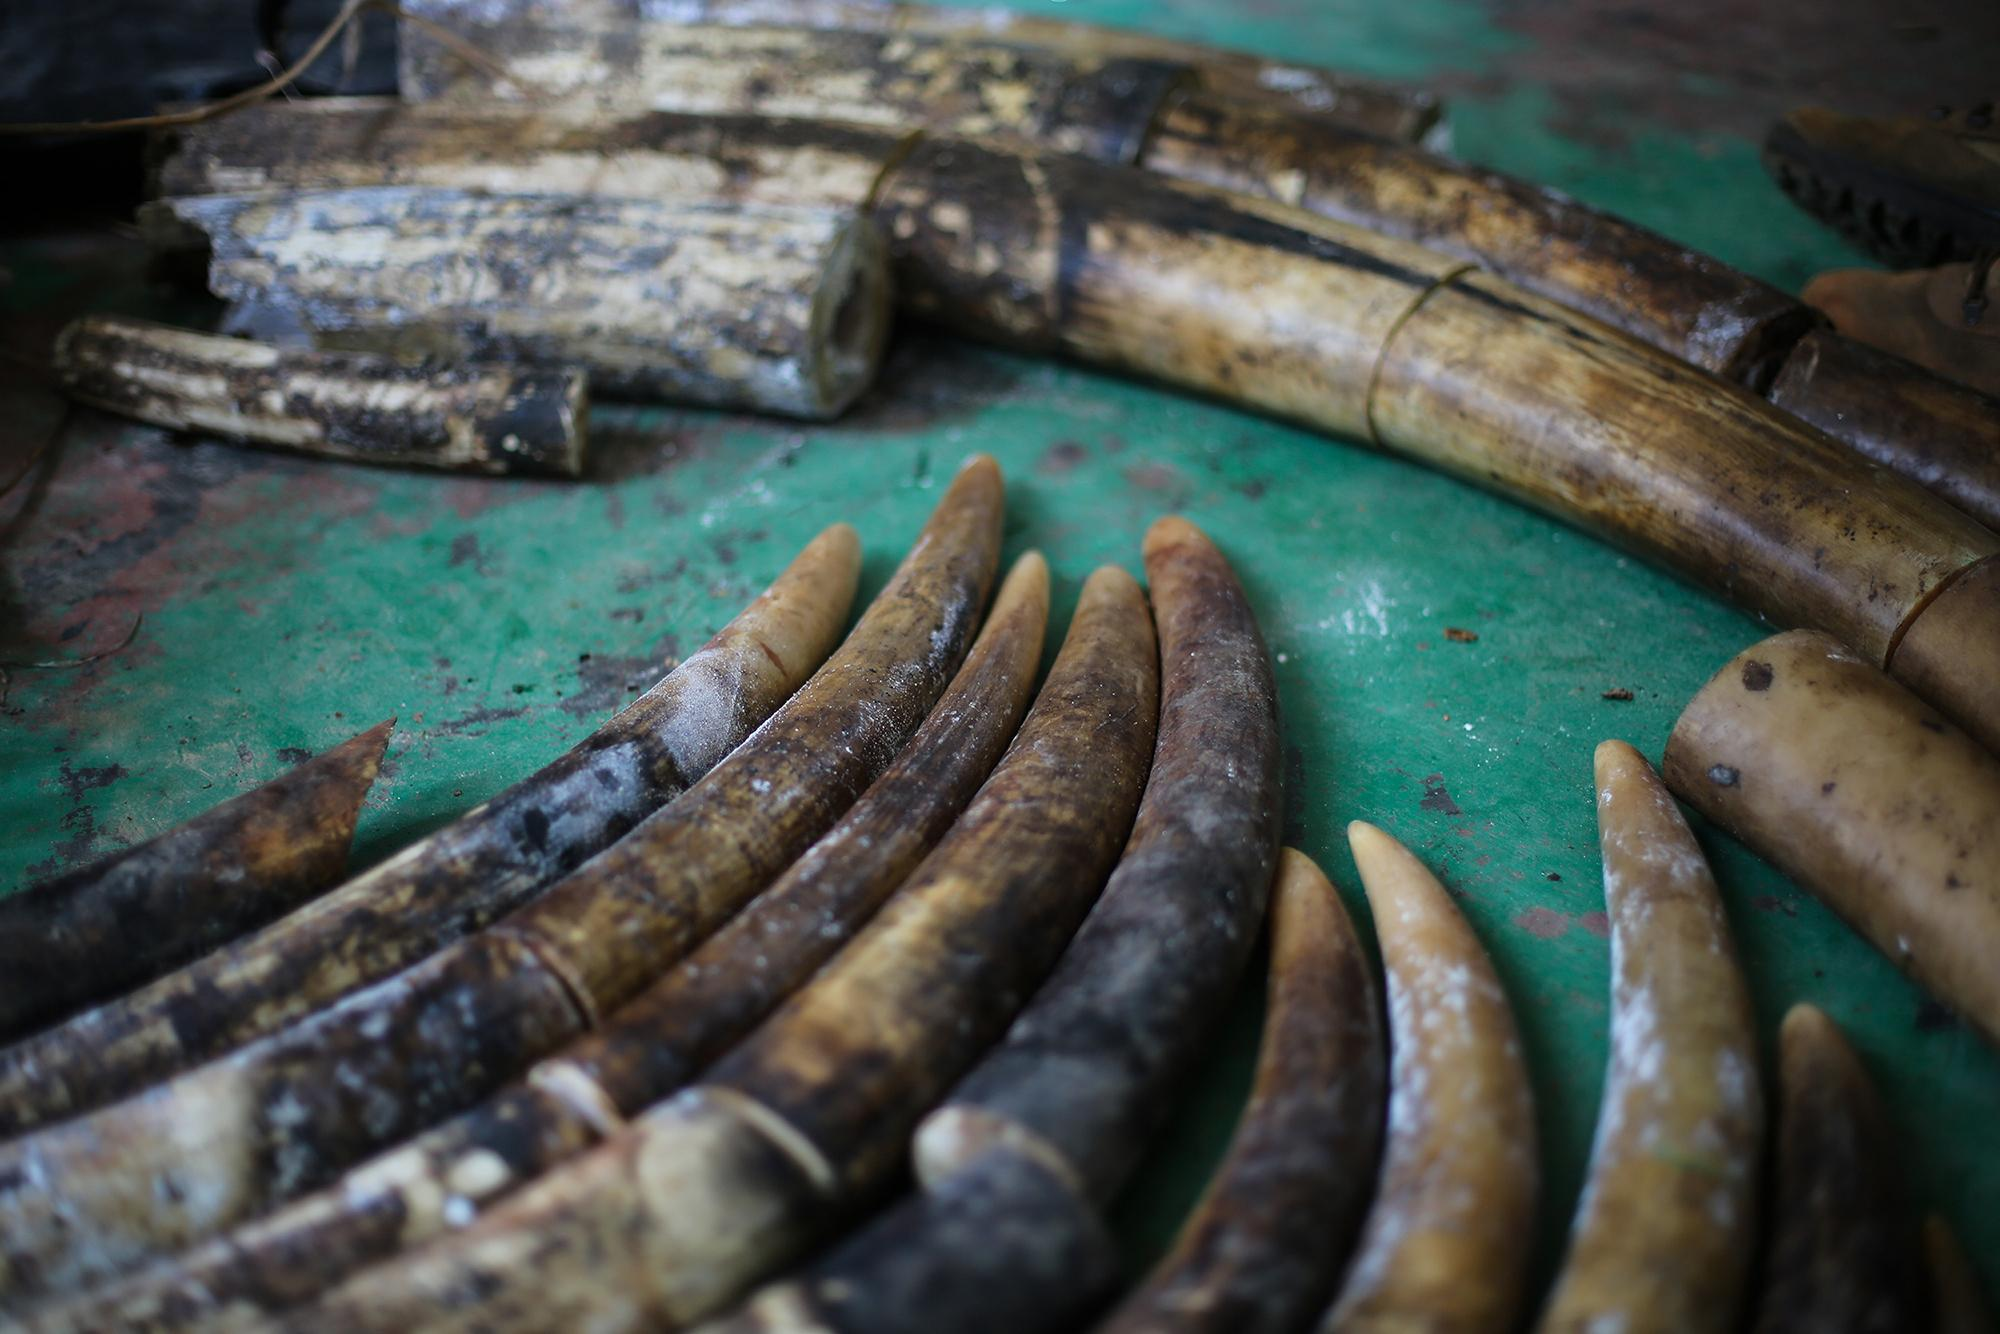 Ivory seized Feb. 2 from poachers convicted of killing 11 elephants in and around Nouabale-Ndoki National Park in the Republic of Congo. (Z. Labuschagne / Wildlife Conservation Society)